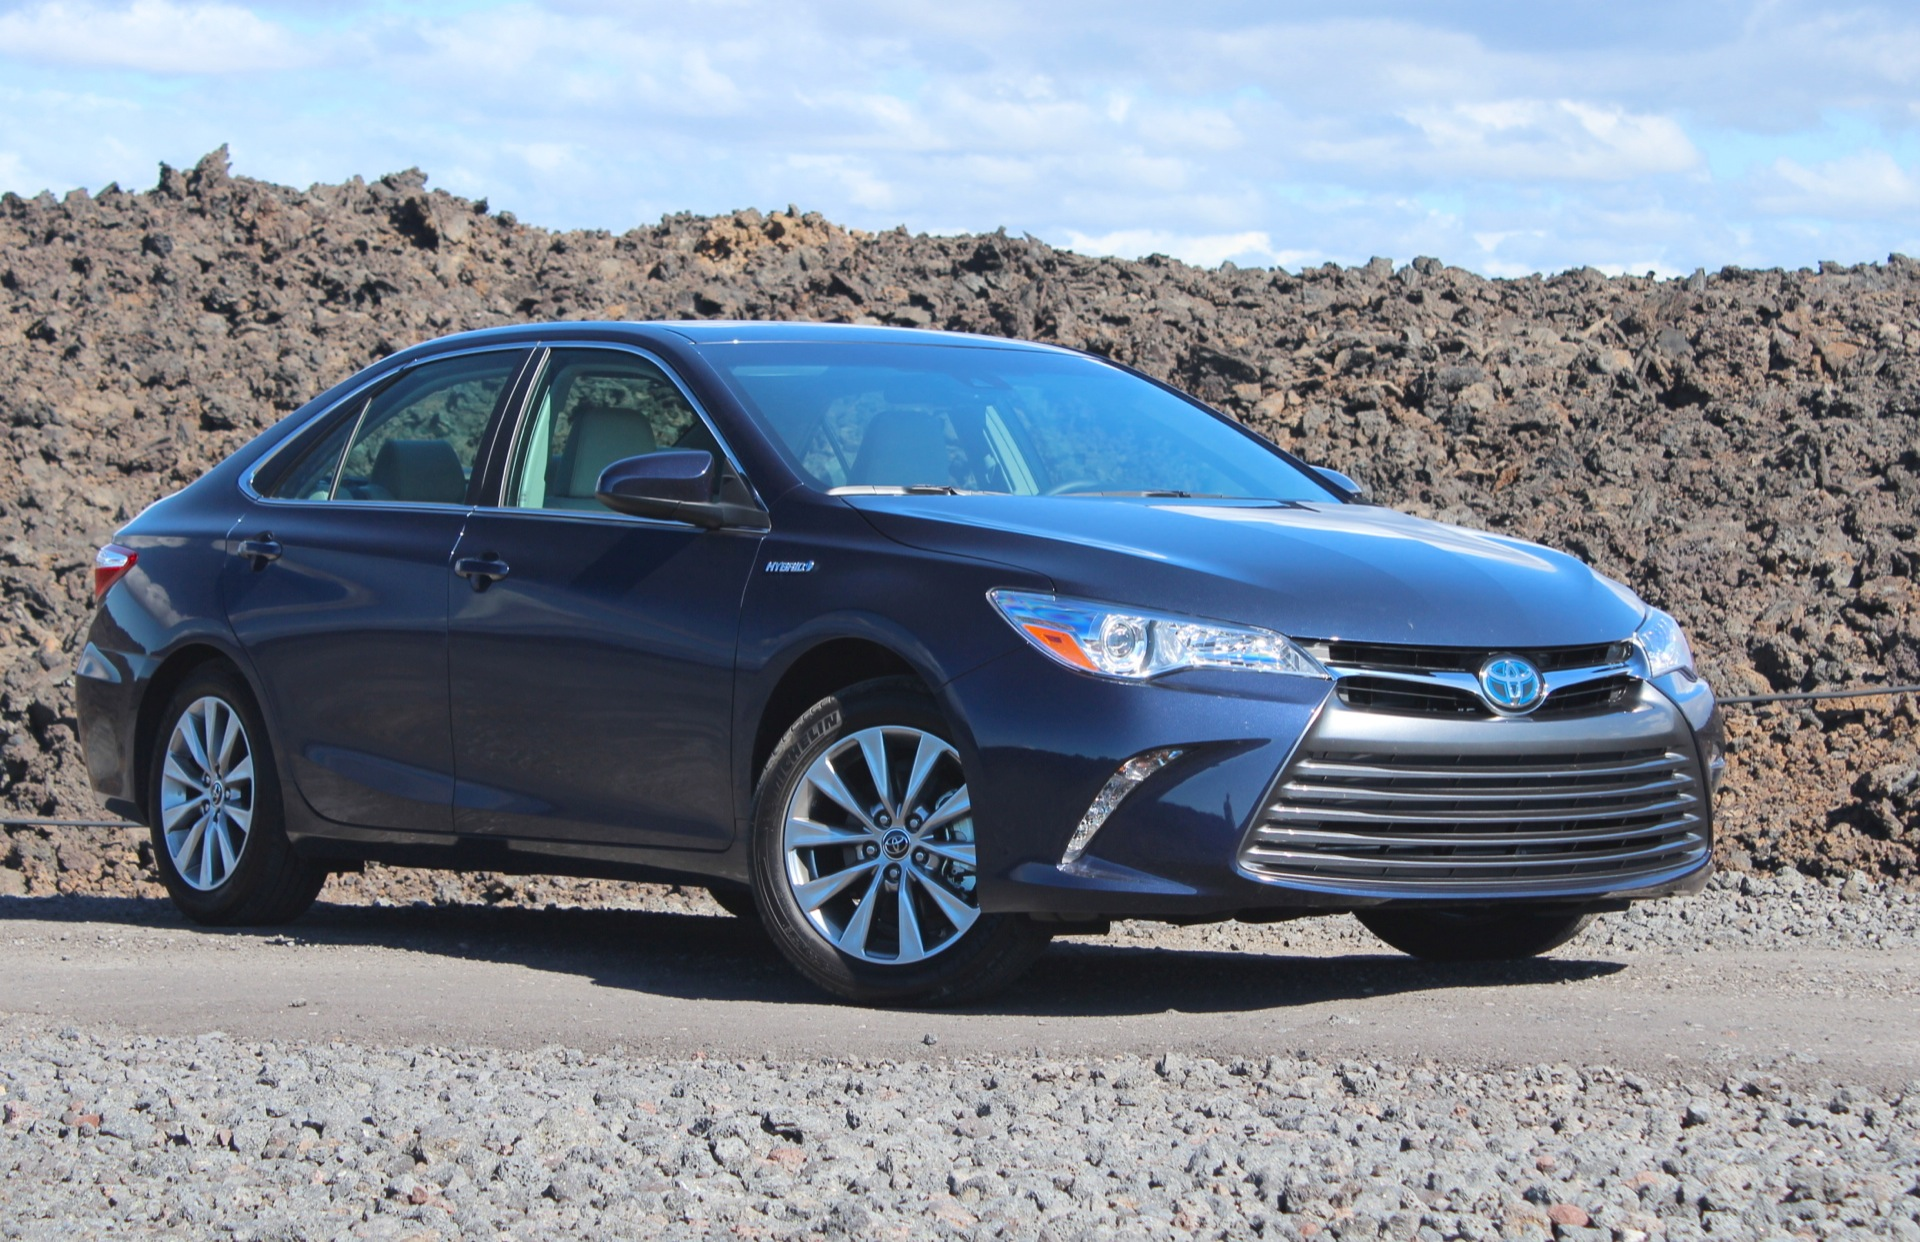 Navy Blue 2015 Seller's Refurbished Toyota Camry